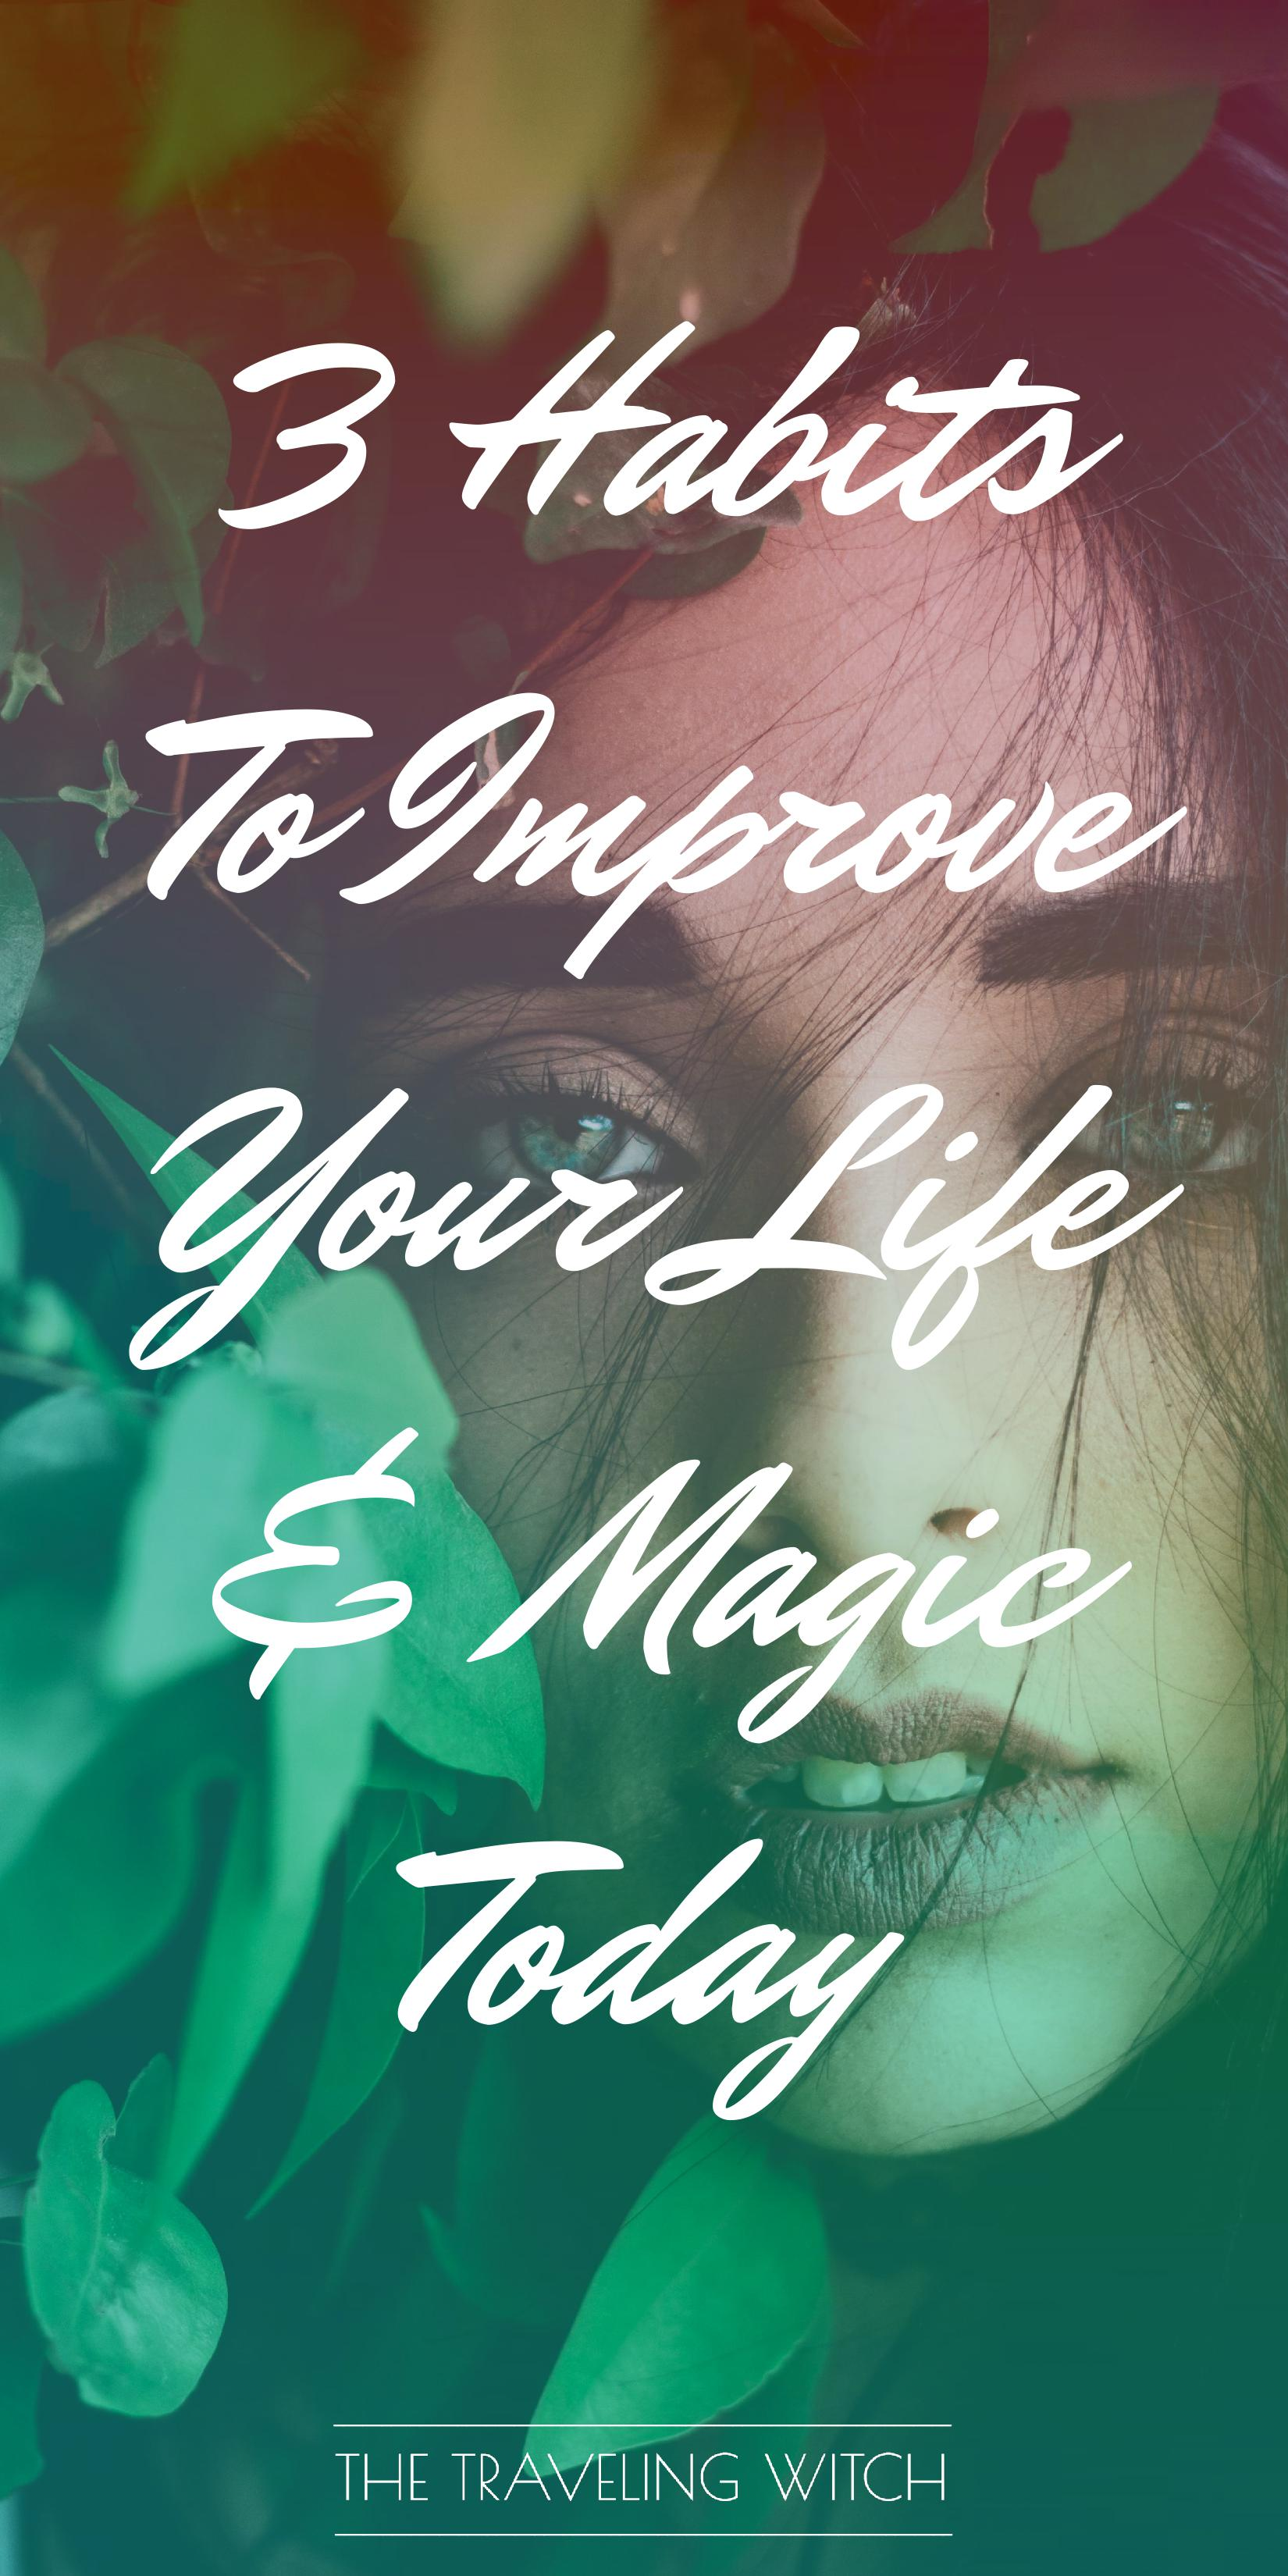 3 Habits To Improve Your Life & Magic Today // Witchcraft // Magic // The Traveling Witch